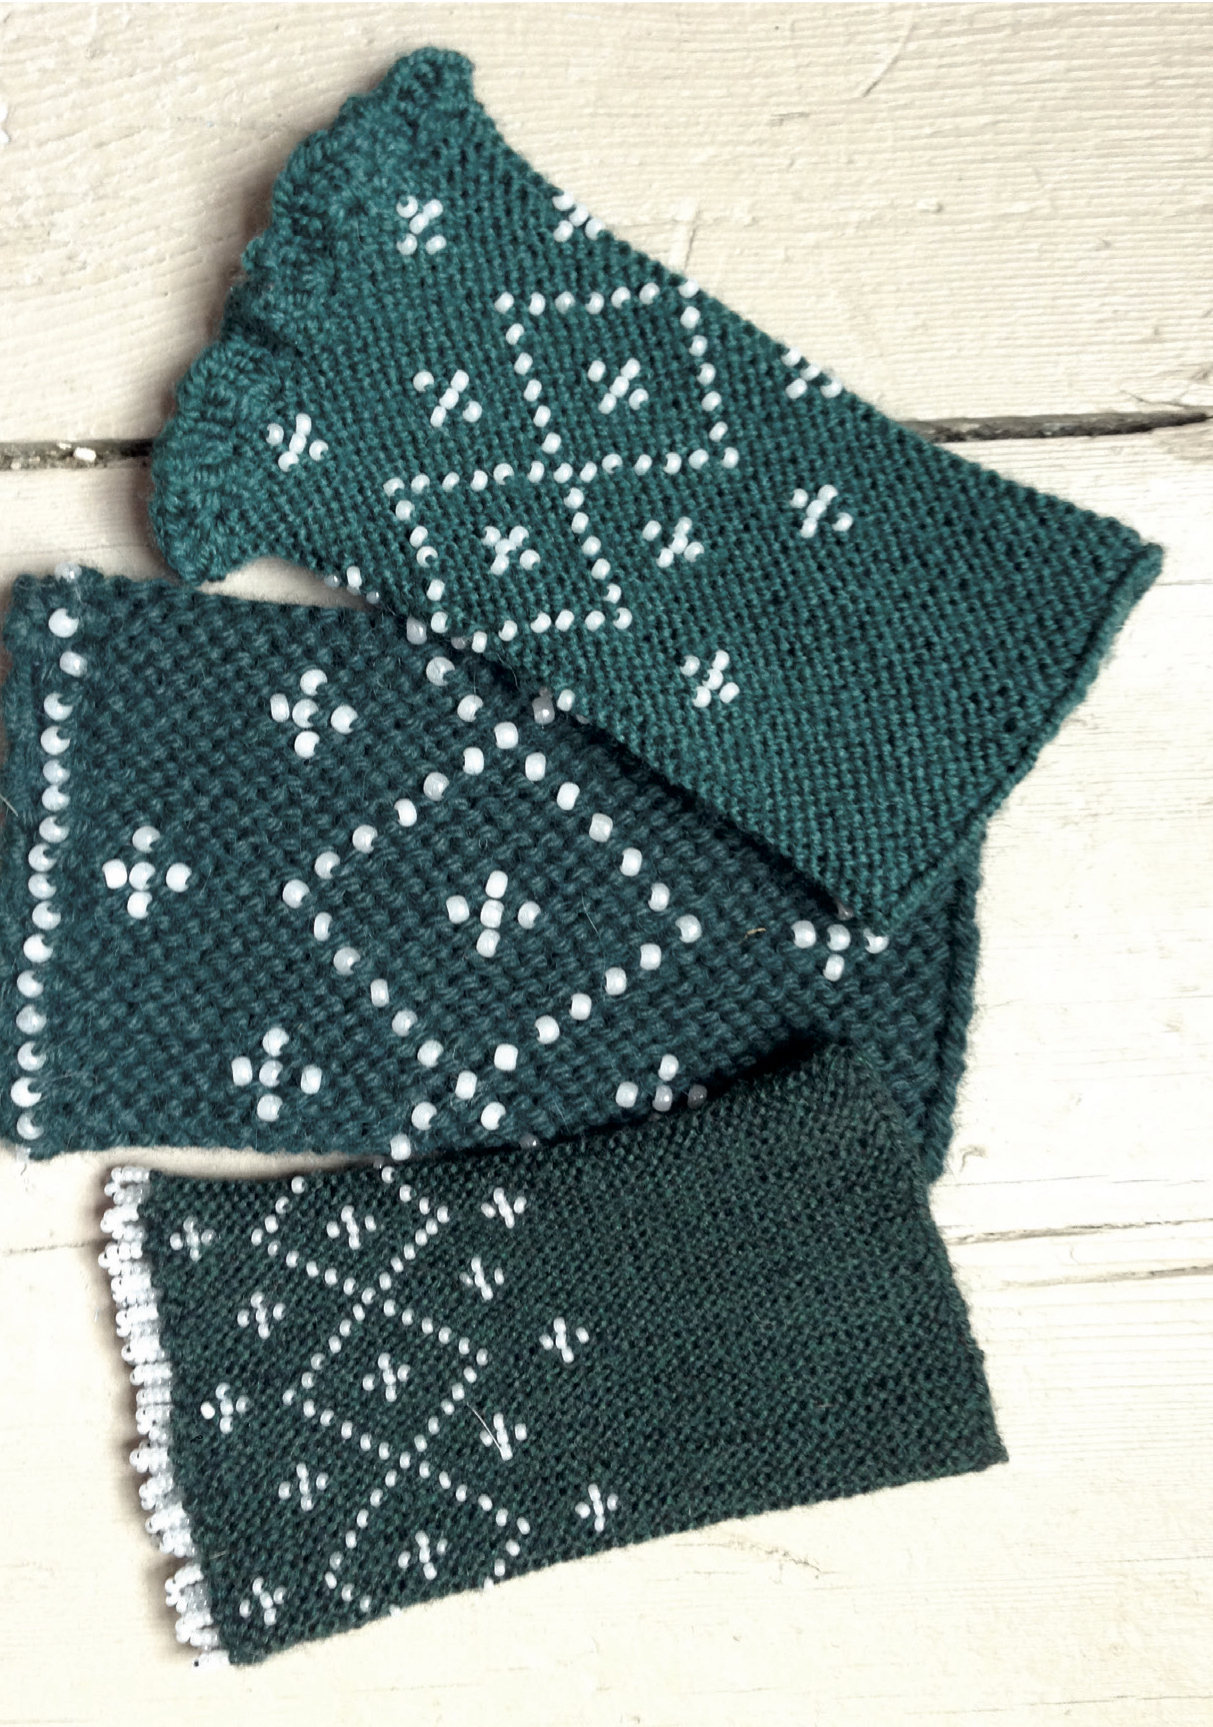 Knitting with Seed Beads